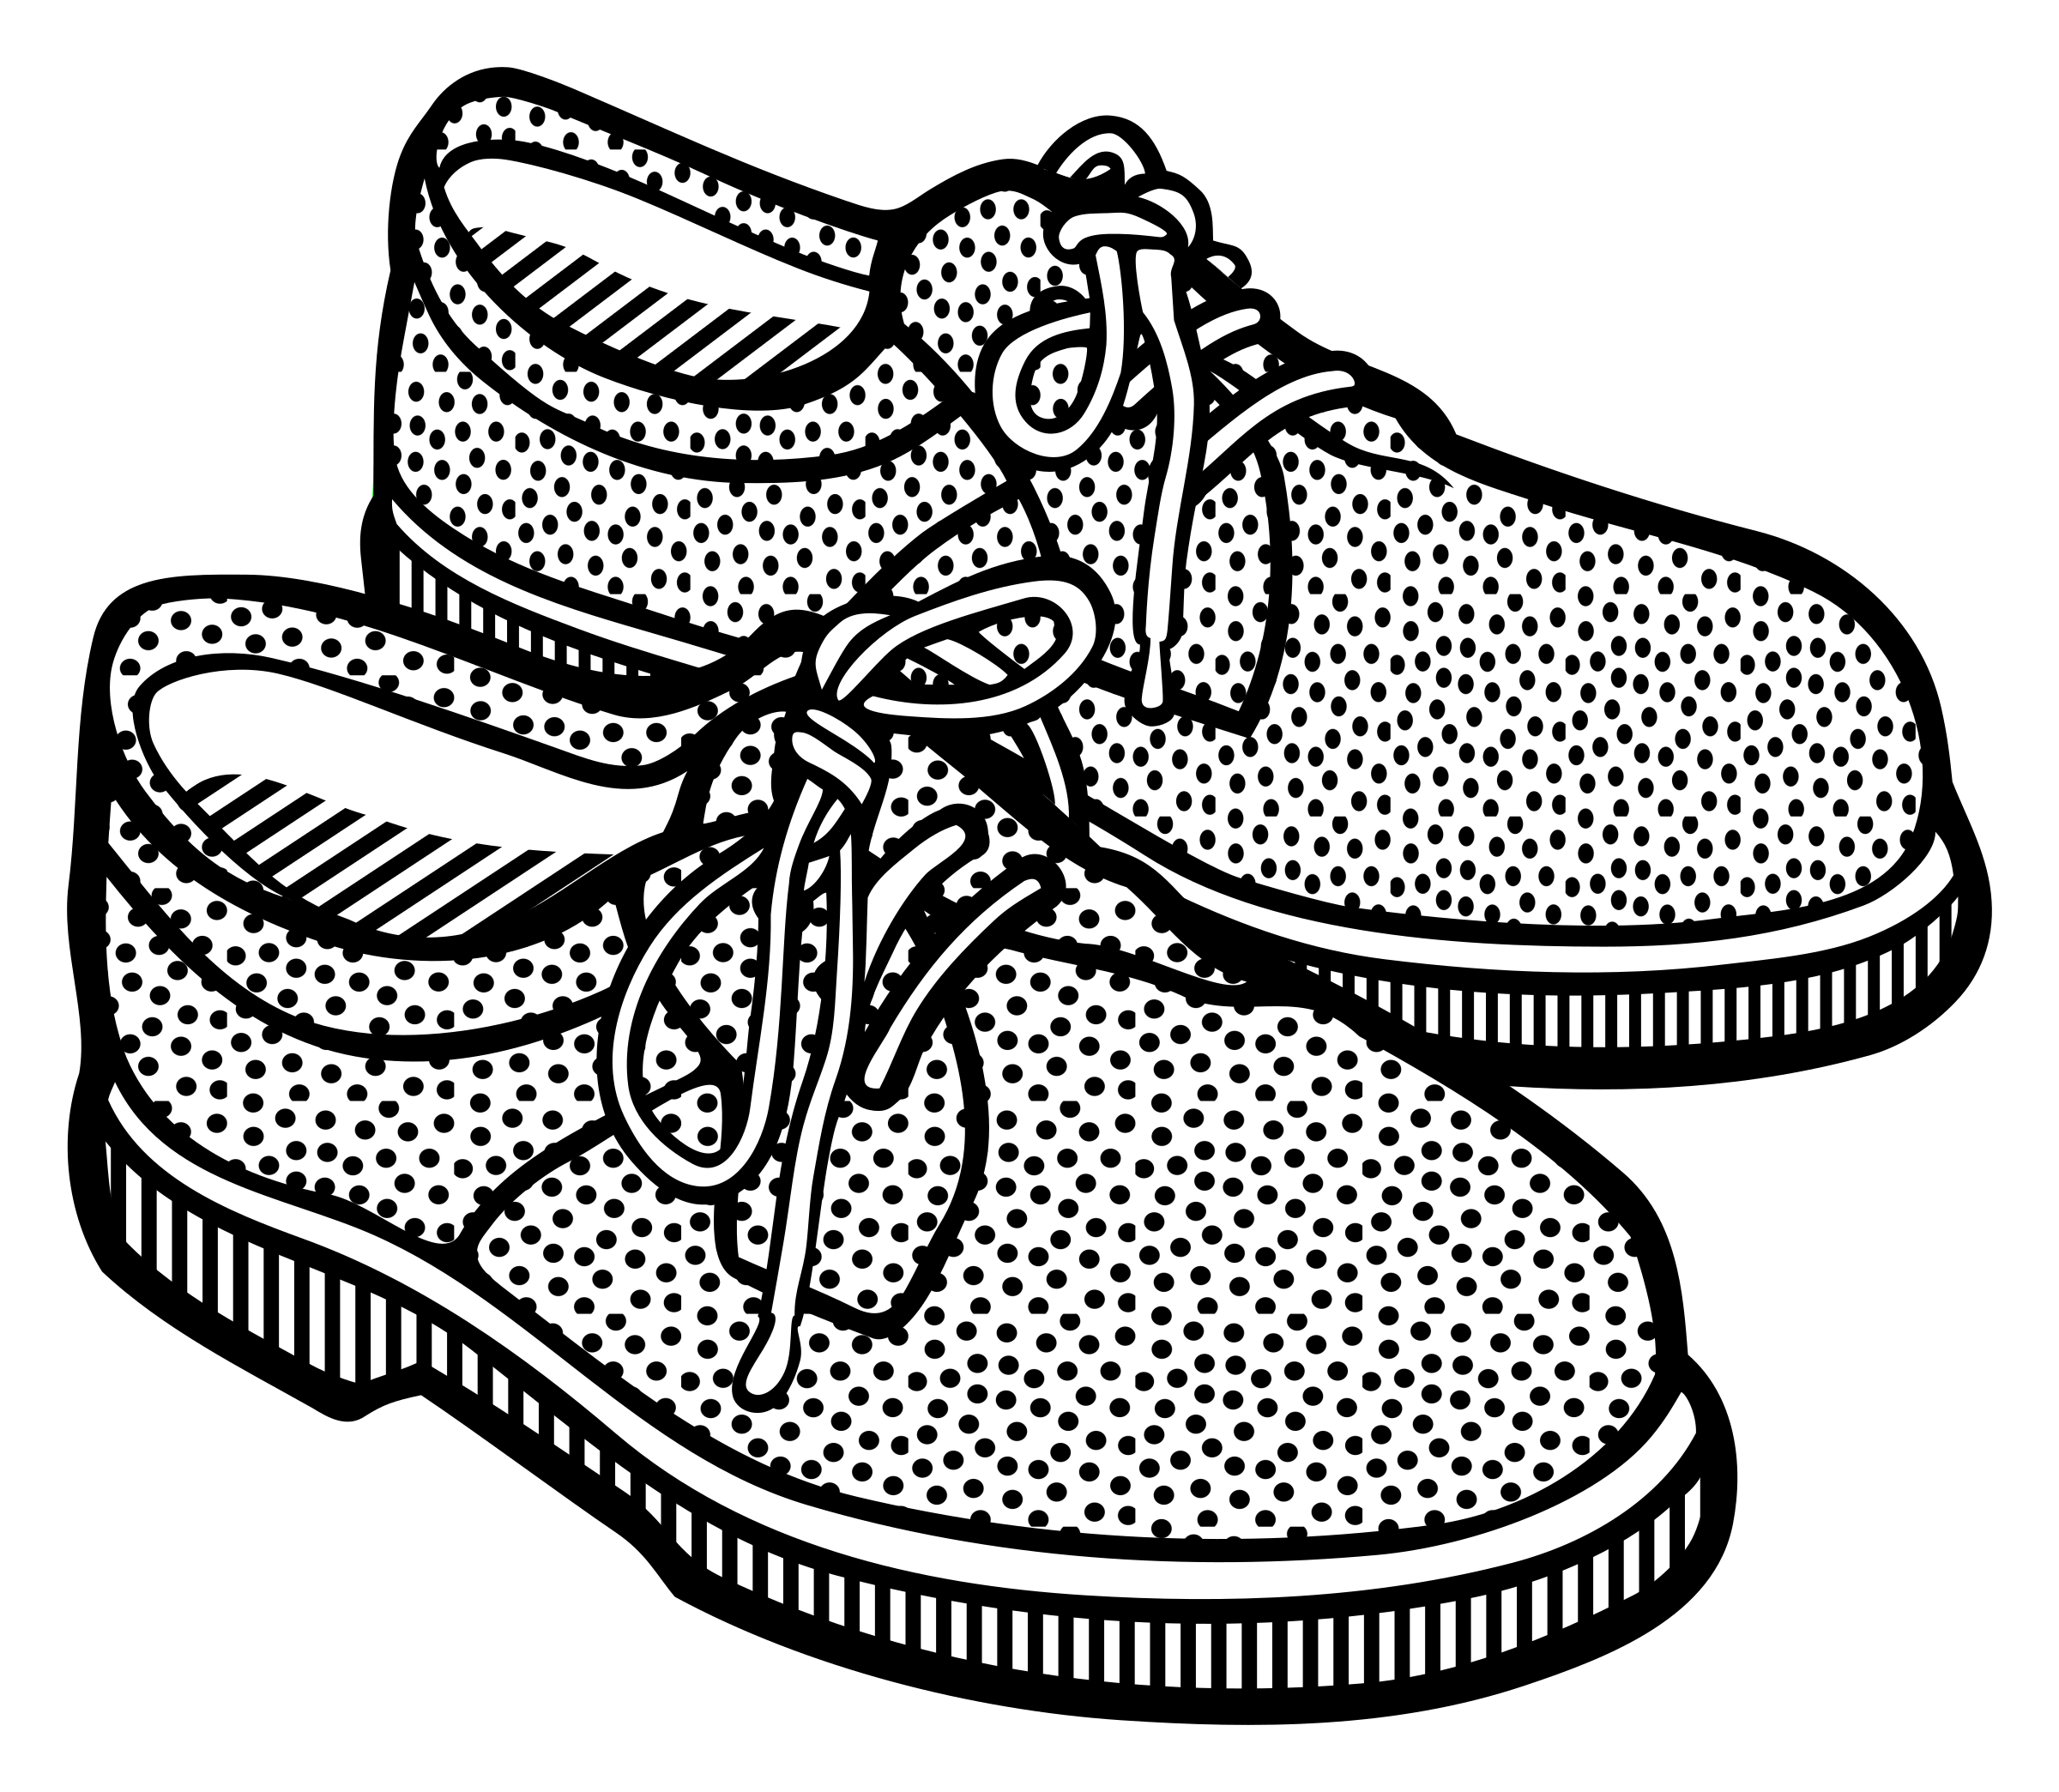 Free Shoes Cliparts Transparent Download Free Clip Art Free Clip Art On Clipart Library